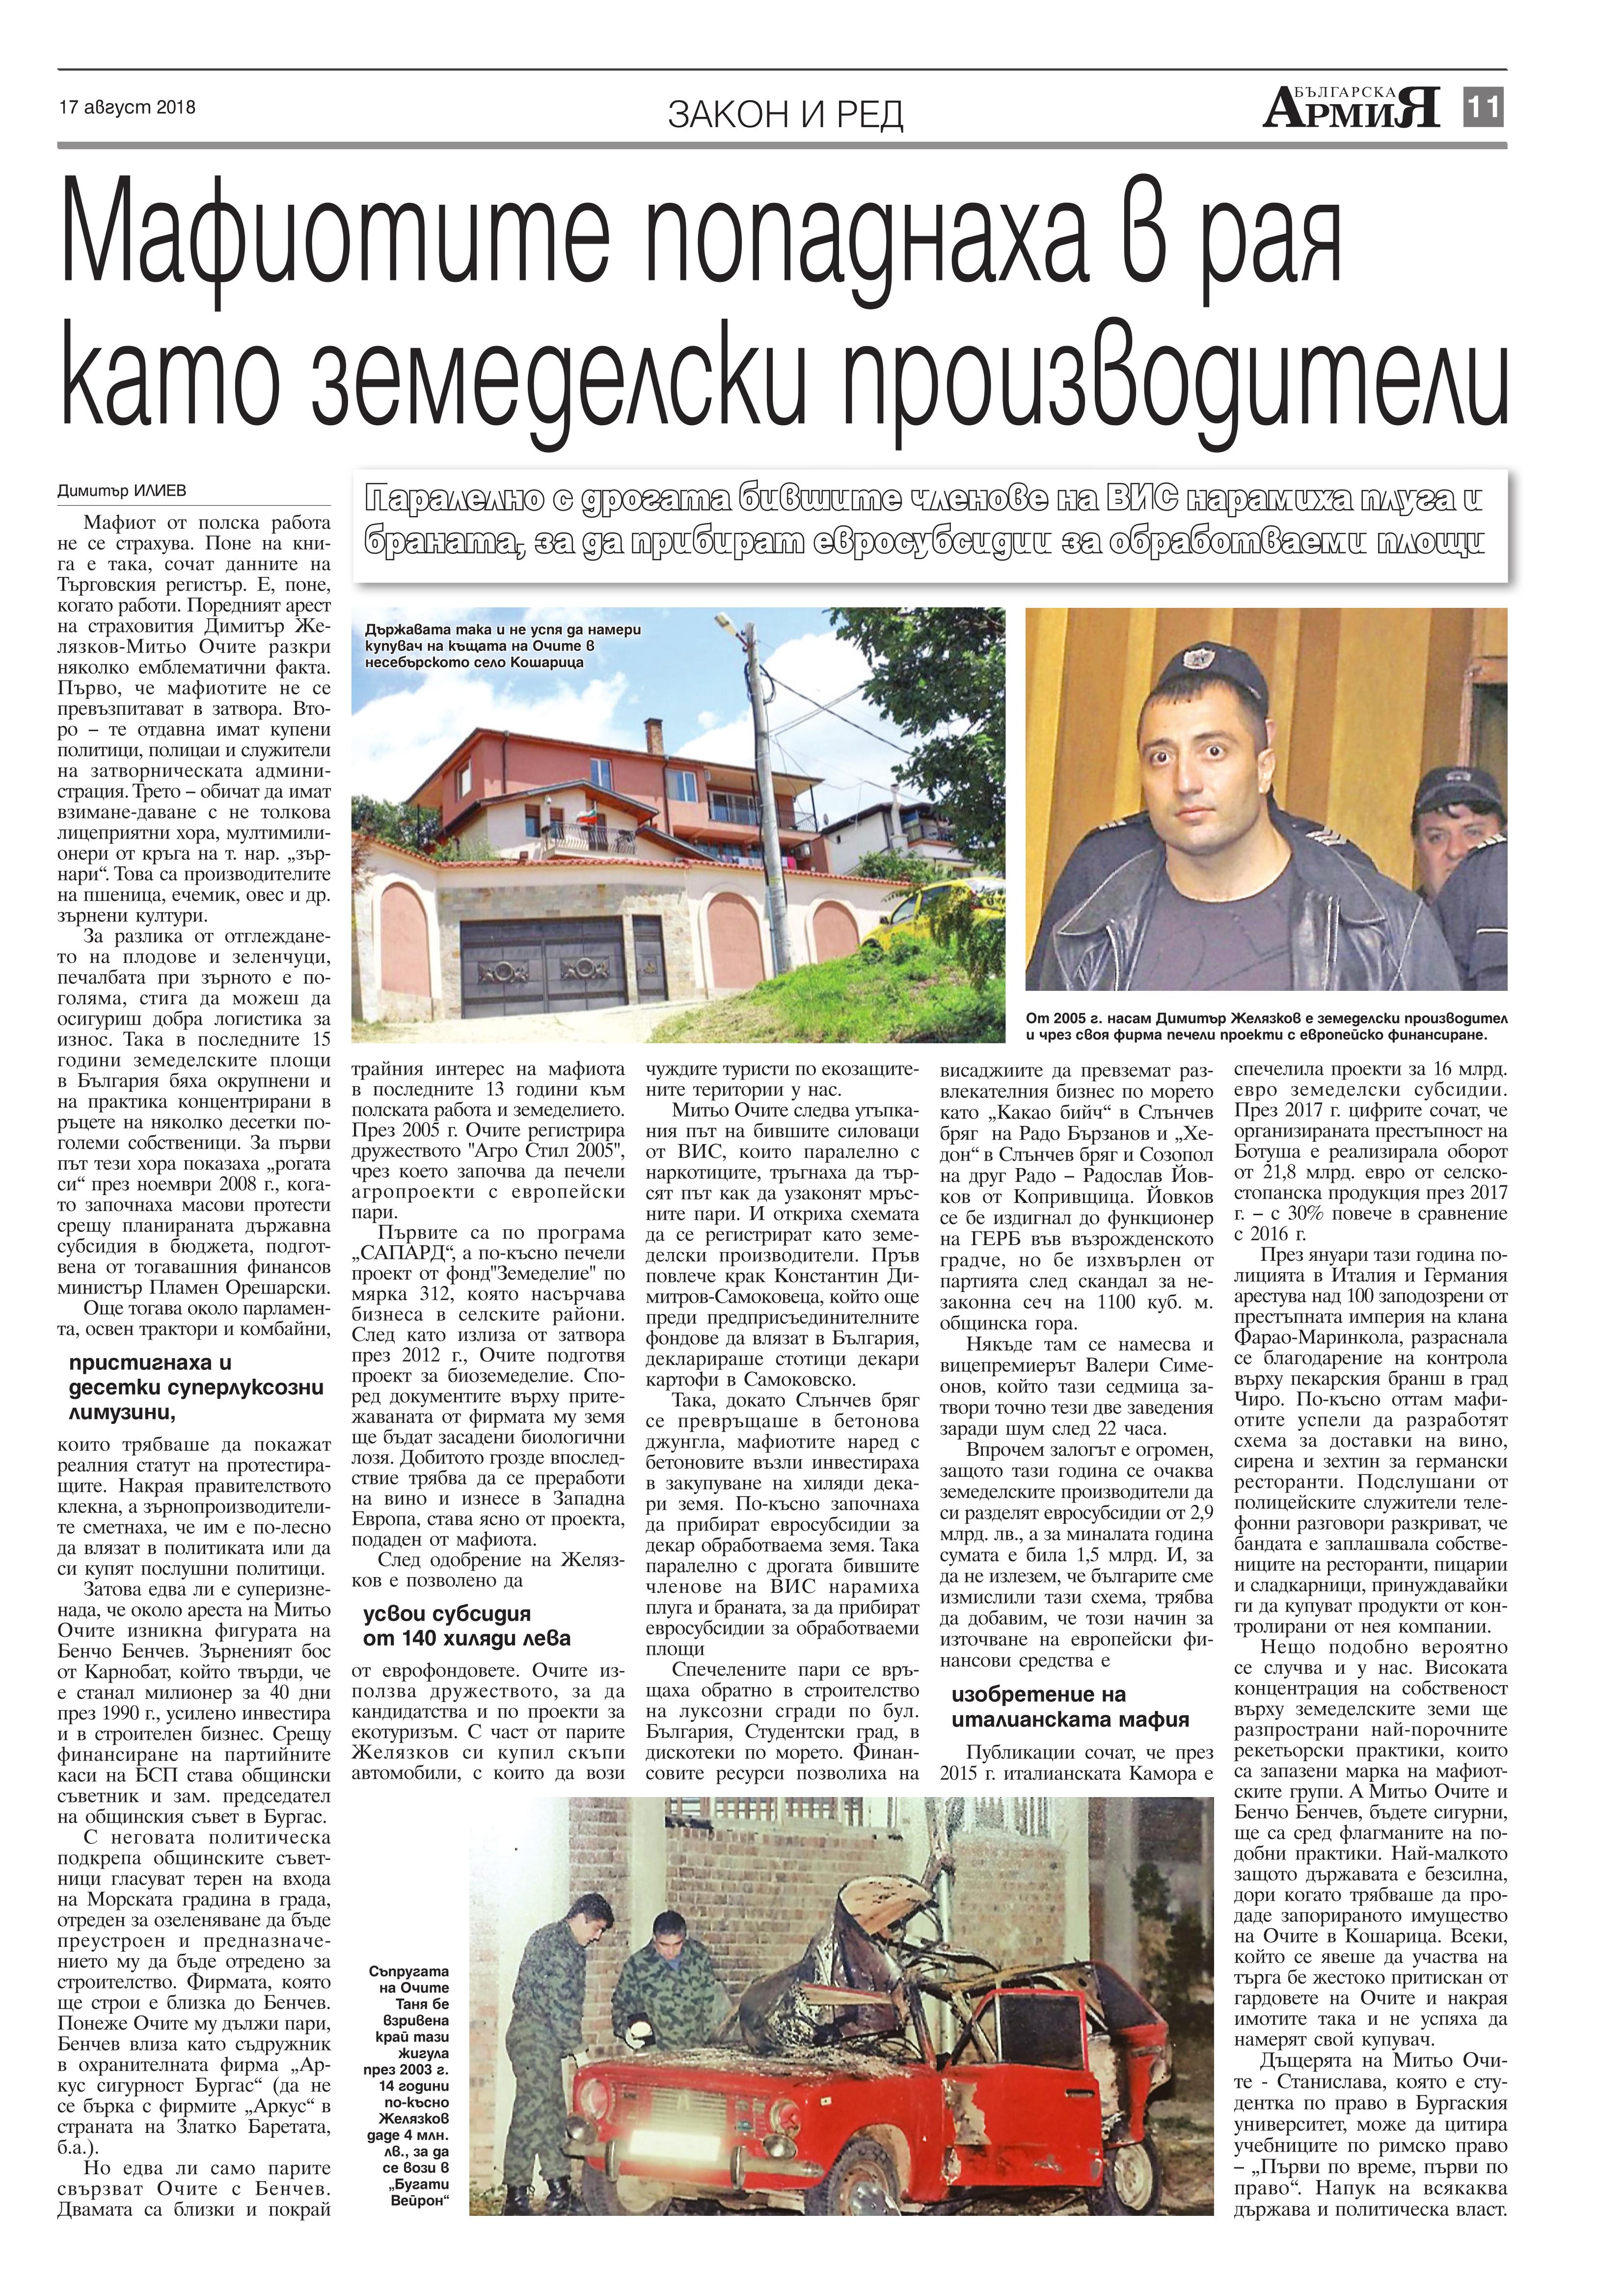 https://armymedia.bg/wp-content/uploads/2015/06/11.page1_-62.jpg